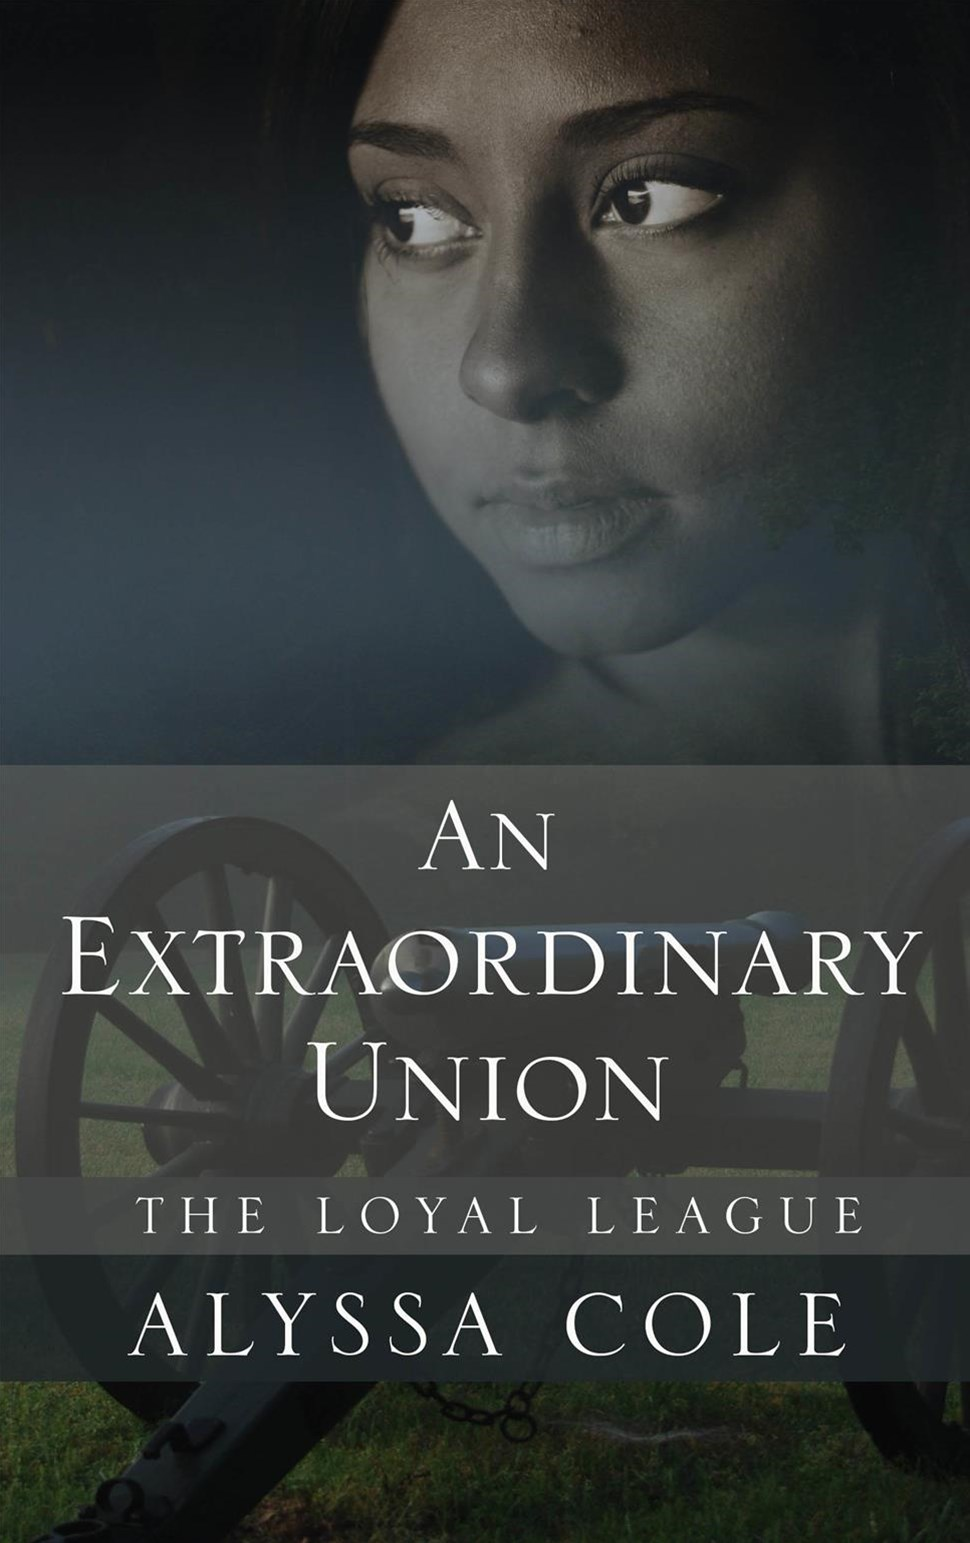 An Extraordinary Union